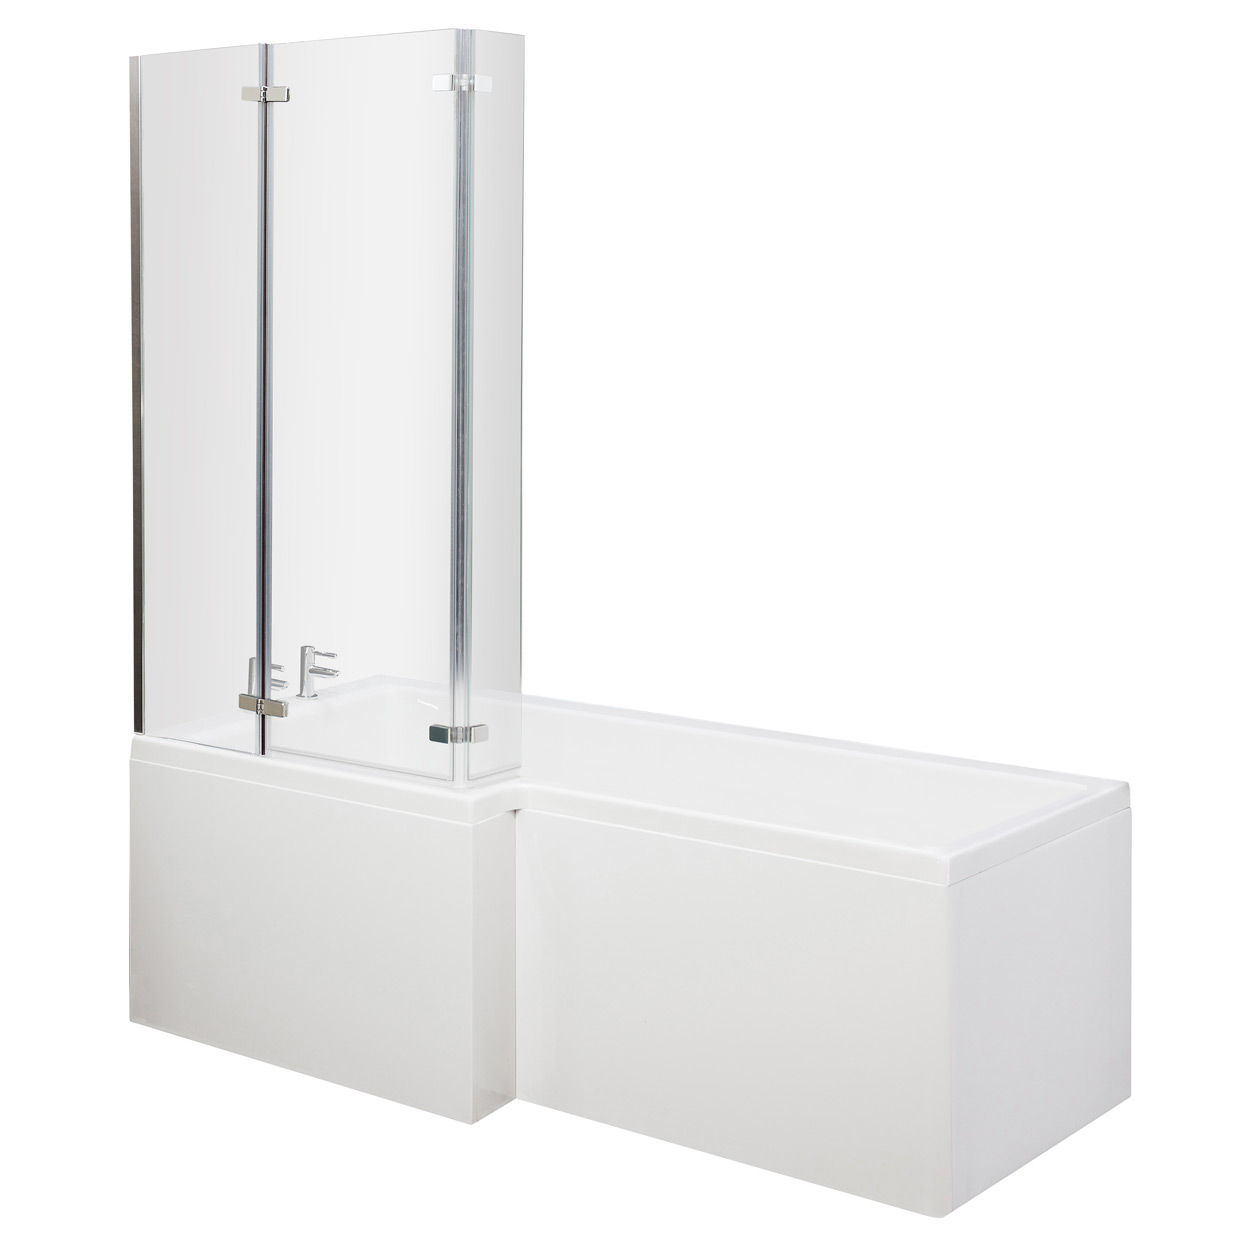 Premier Cove L-Shaped Shower Bath Panel Hinged Screen 1700mm x 700mm/850mm Left Handed-0